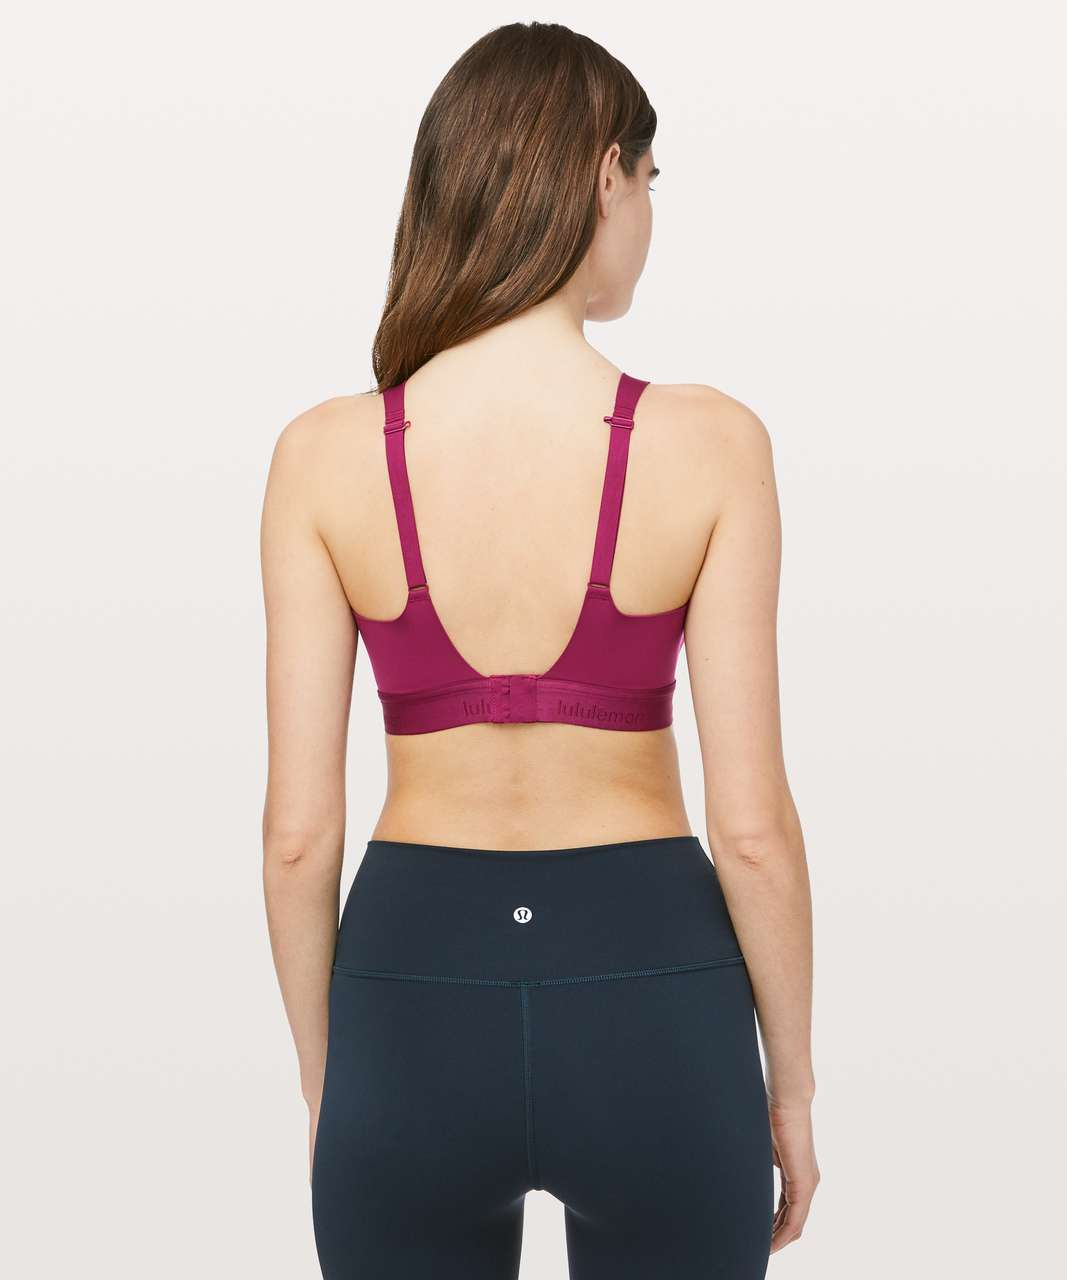 Lululemon Fine Form Bra - Star Ruby